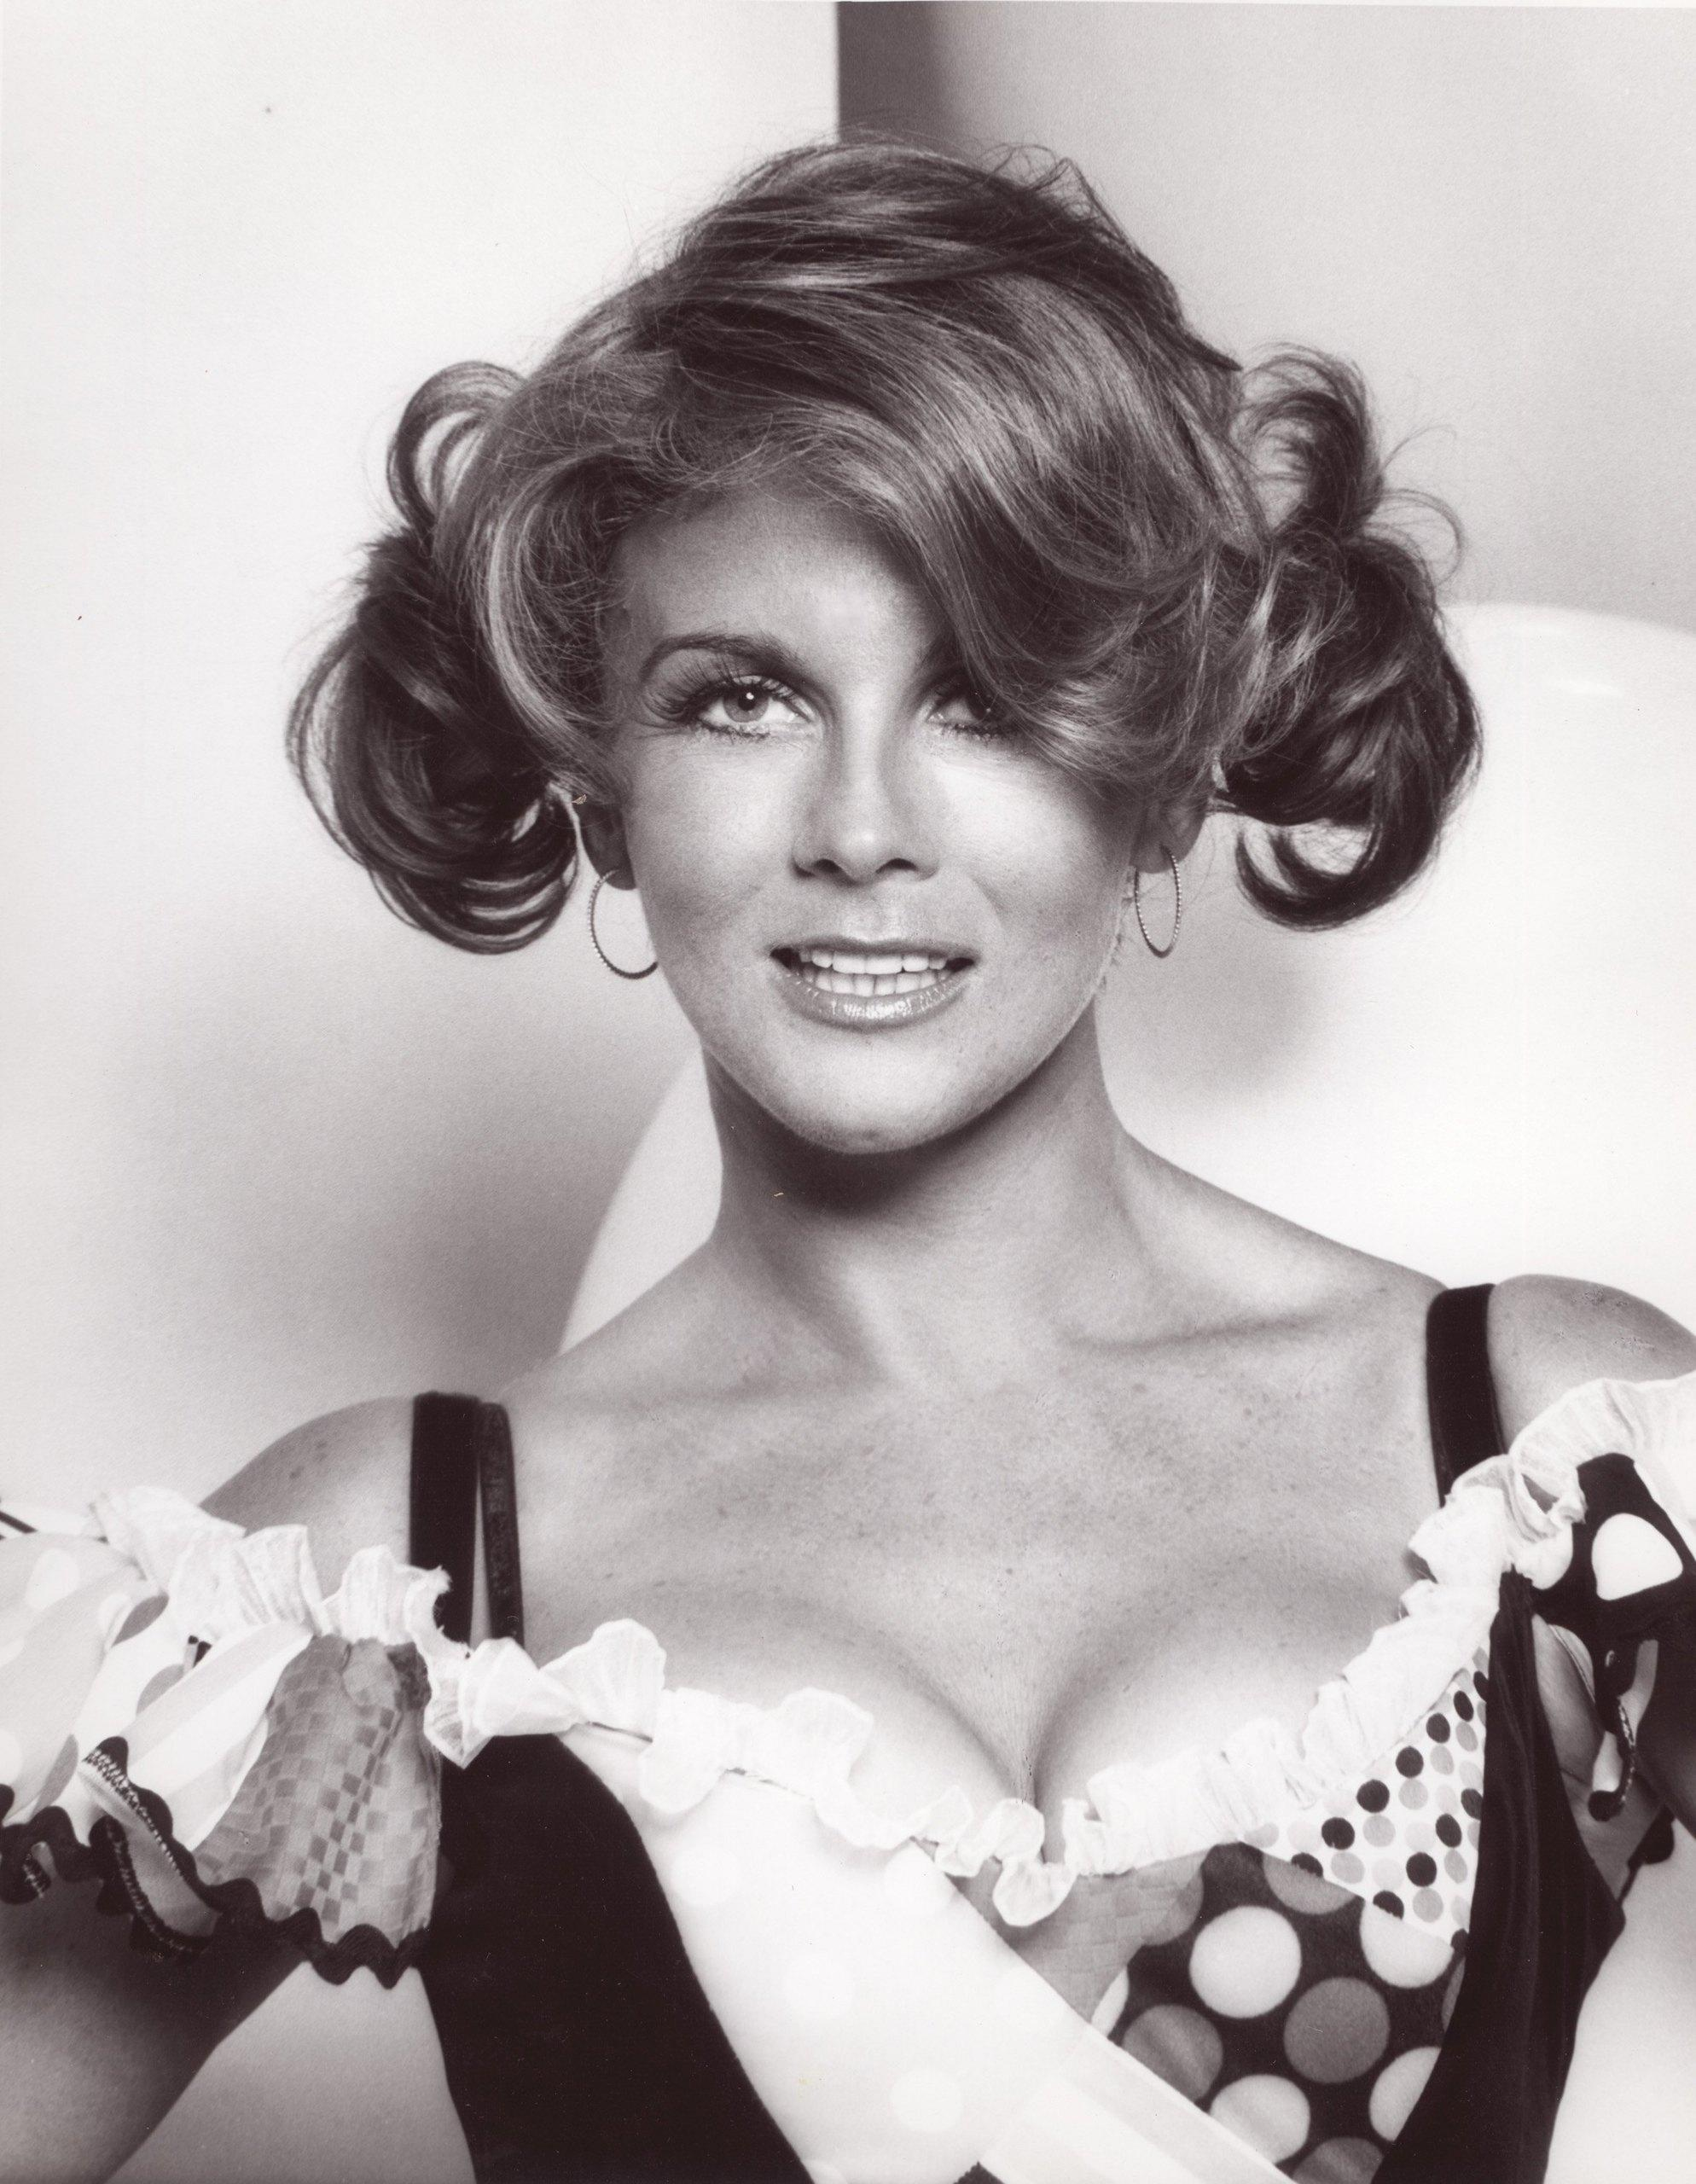 Ann-Margret Olsson (1975)